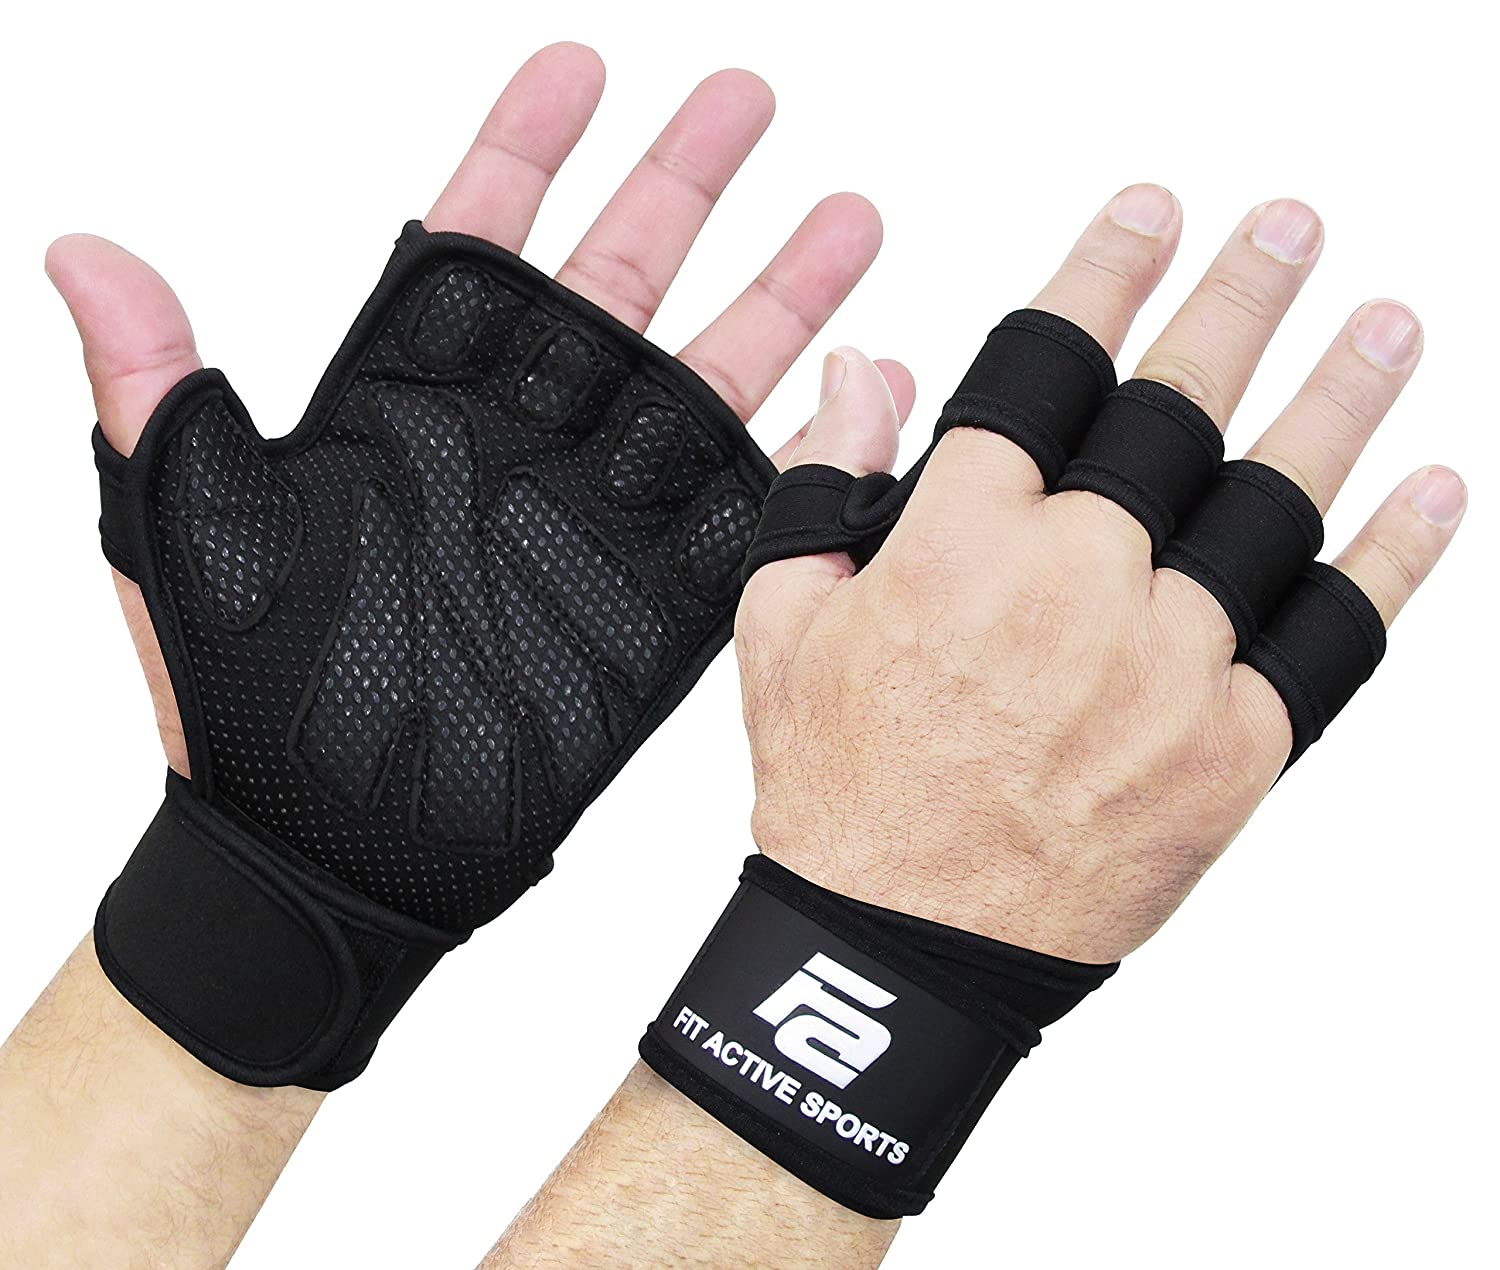 New Ventilated Weight Lifting Gloves with Built In Wrist Wraps Full Palm Protection Extra Grip. Great for Pull Ups Cross Training Fitness WODs Weightlifting. Suits Men Women